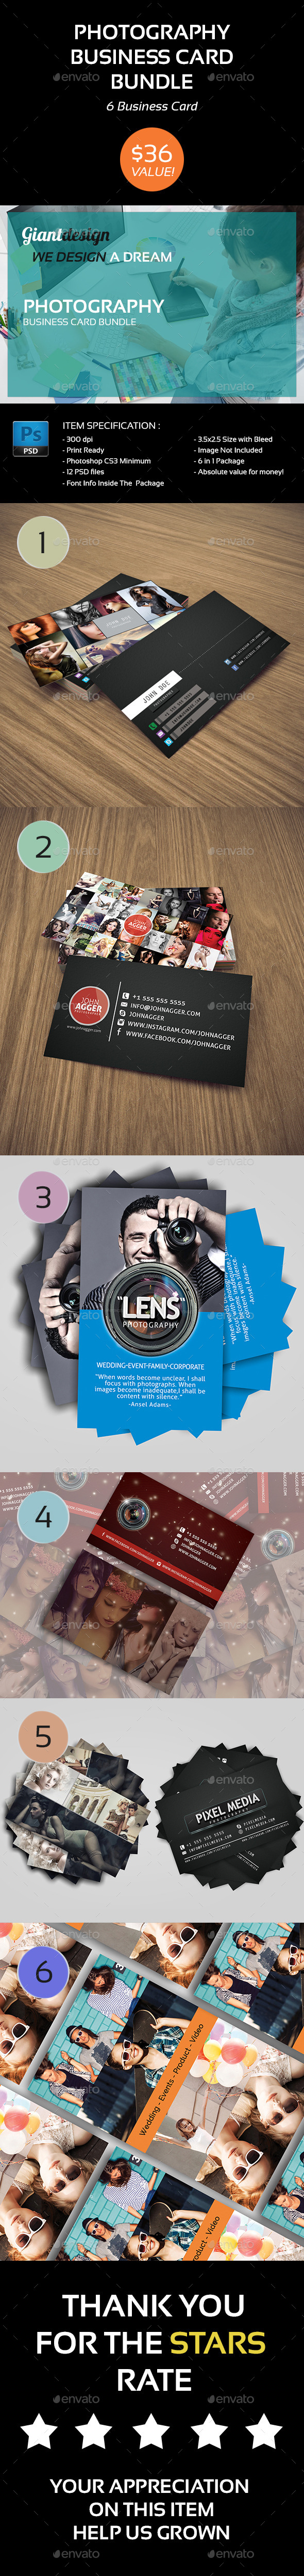 GraphicRiver Photography Business Card Bundle 10714391